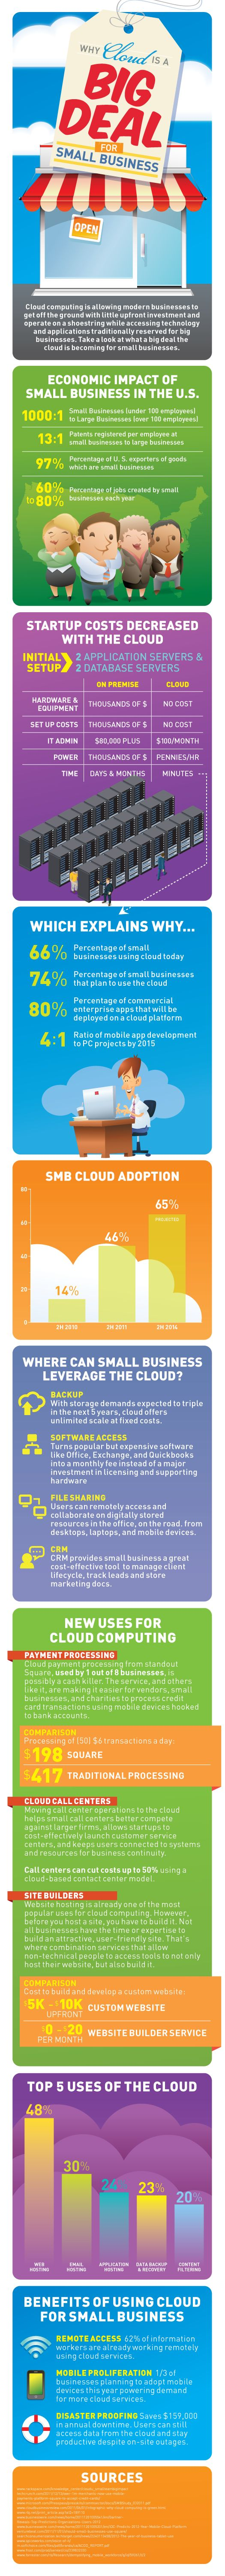 Why cloud is such a big deal for small businessBig Business, Clouds Infographic, Cloud Computing, Small Businesses, Interesting Facts, Cloudcomputing Smallbiz, Clouds Computers, Business Infographic, Big Deals